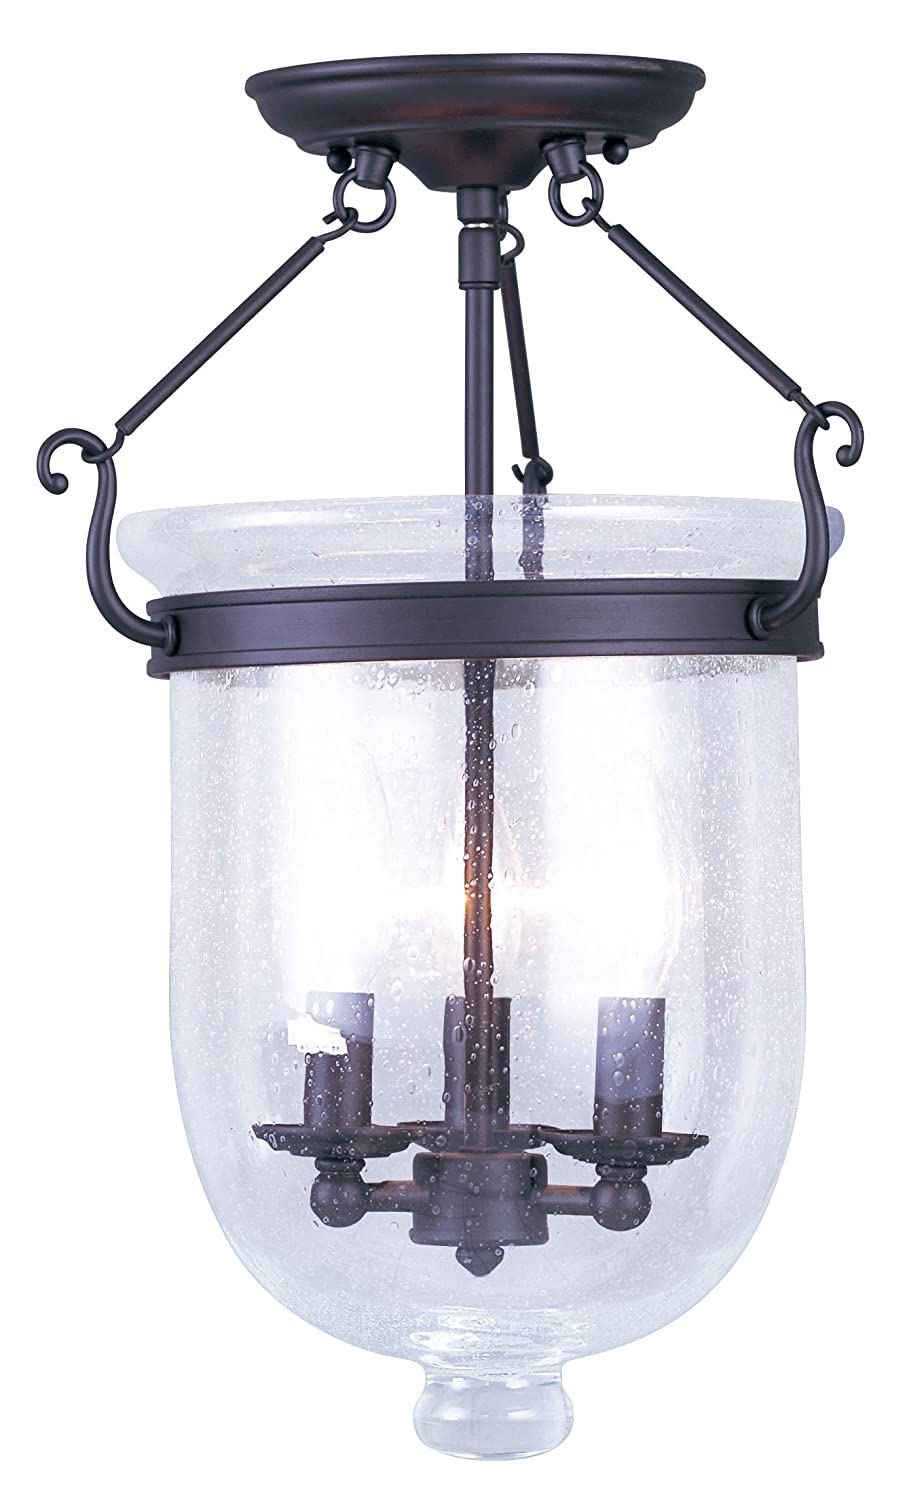 livex zoom sale hover light on to productdetail jefferson htm four pendant nickel lighting polished